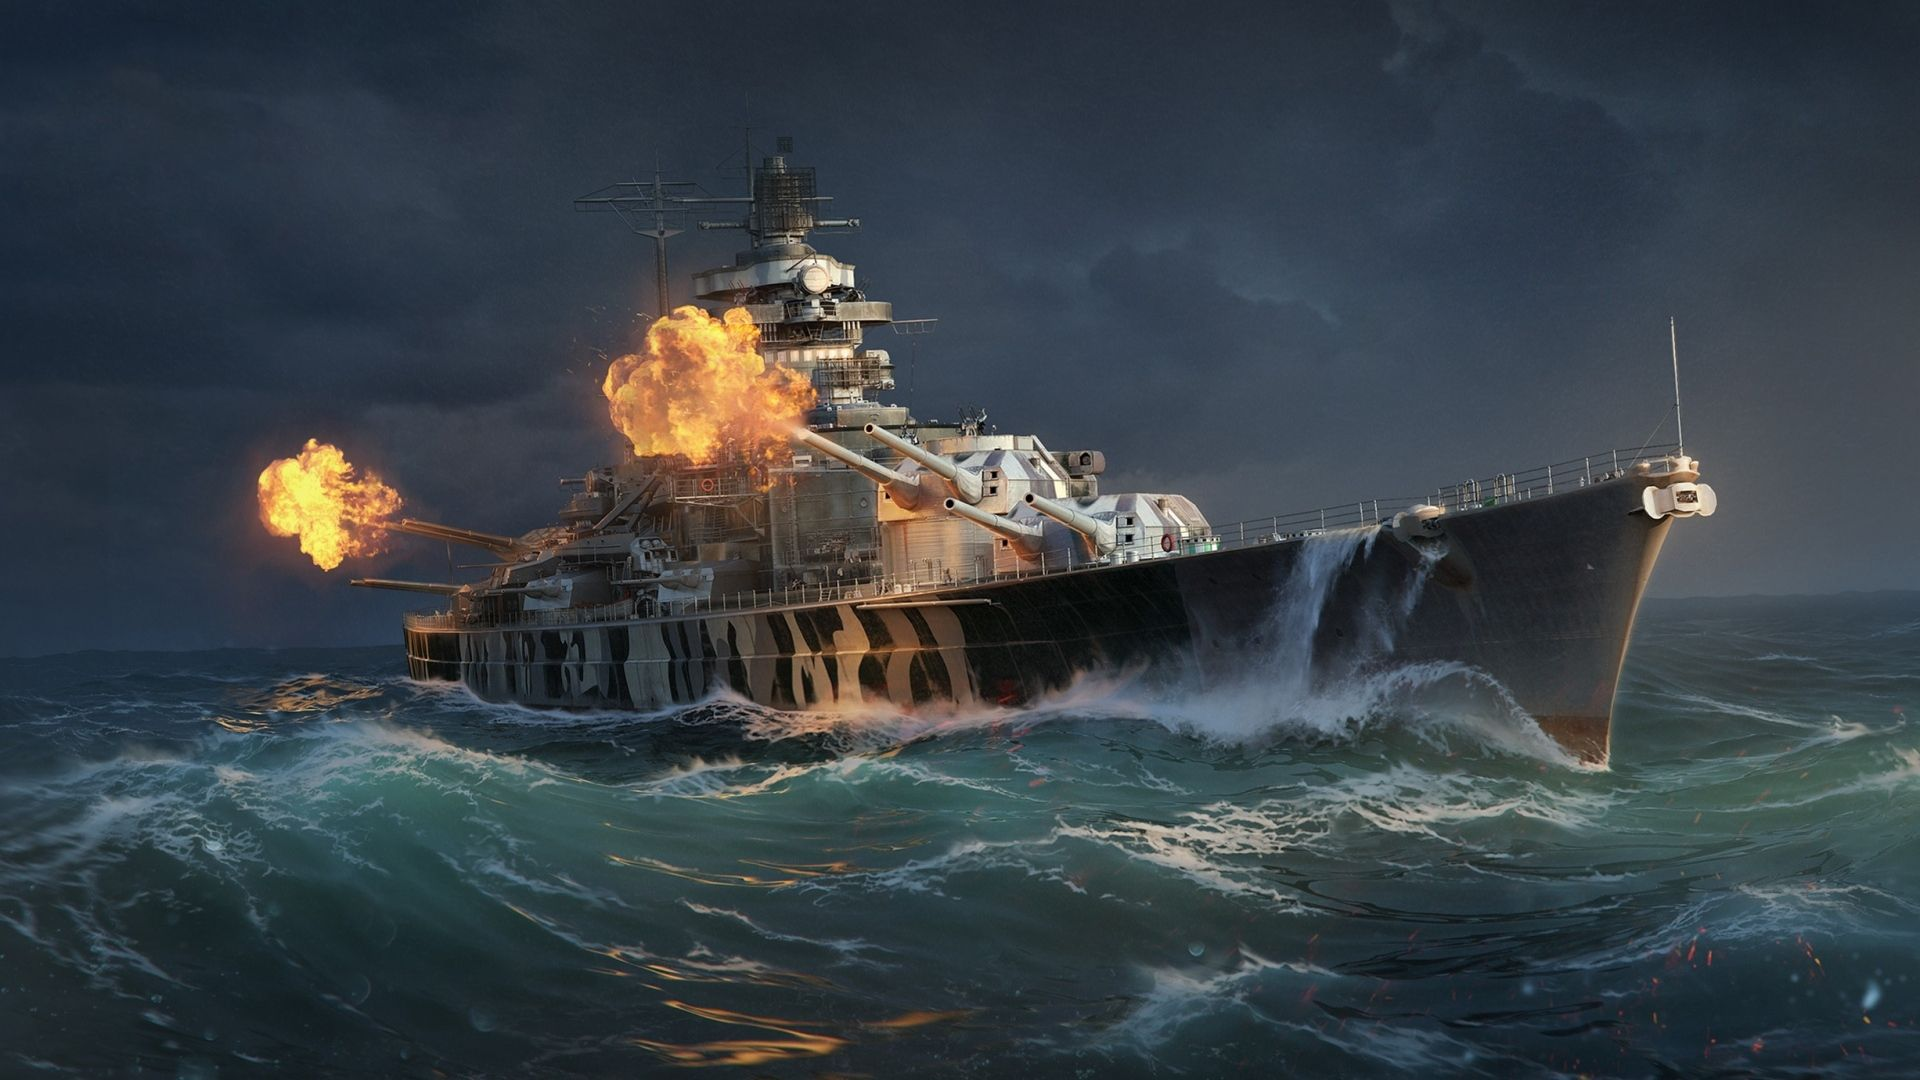 Full Hd 1080p World Of Warships Wallpapers Hd Desktop Backgrounds